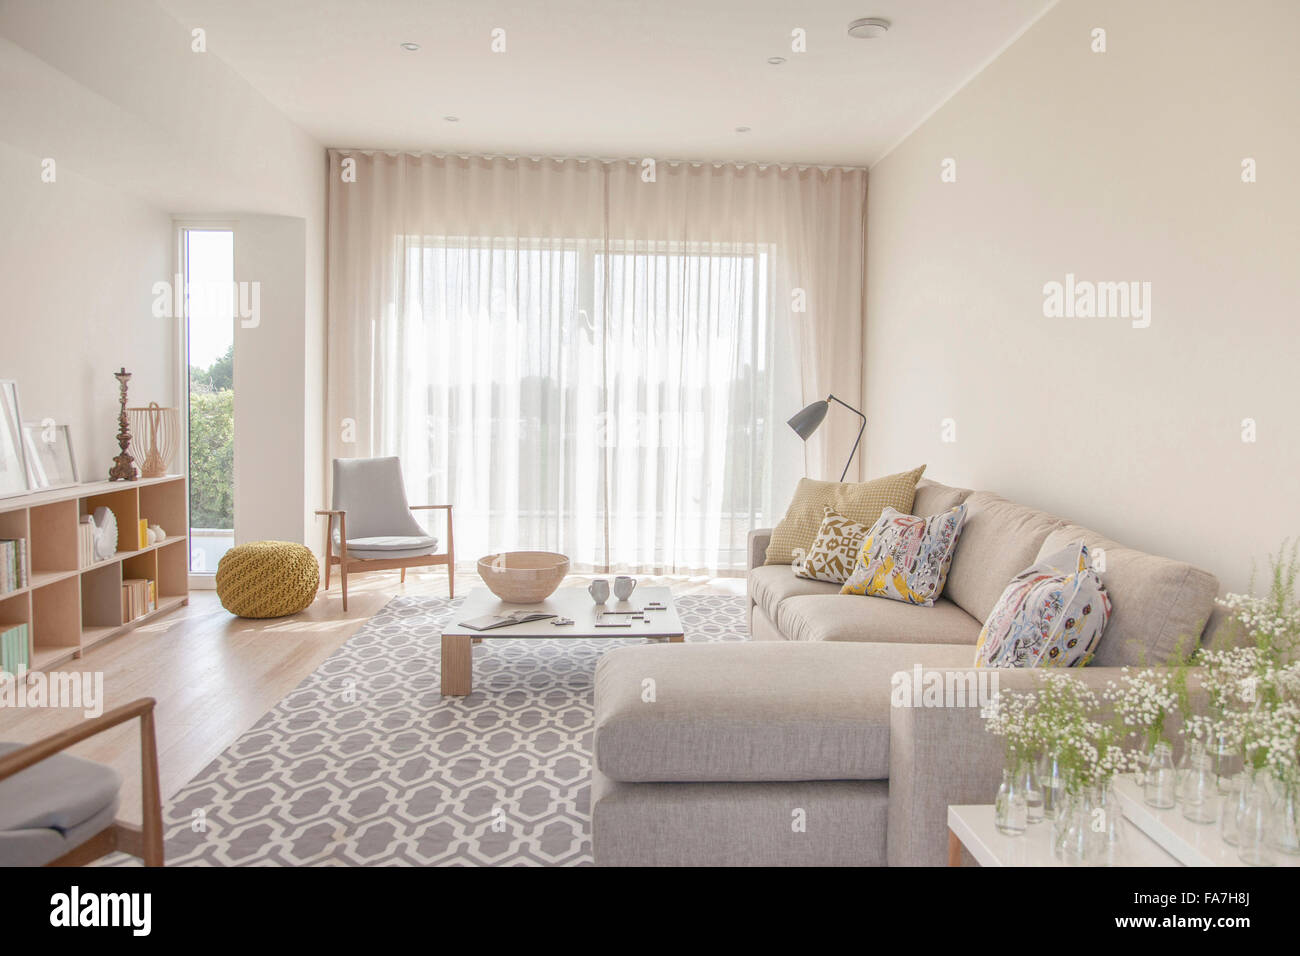 Country Living Room Modern Stock Photos & Country Living Room Modern ...